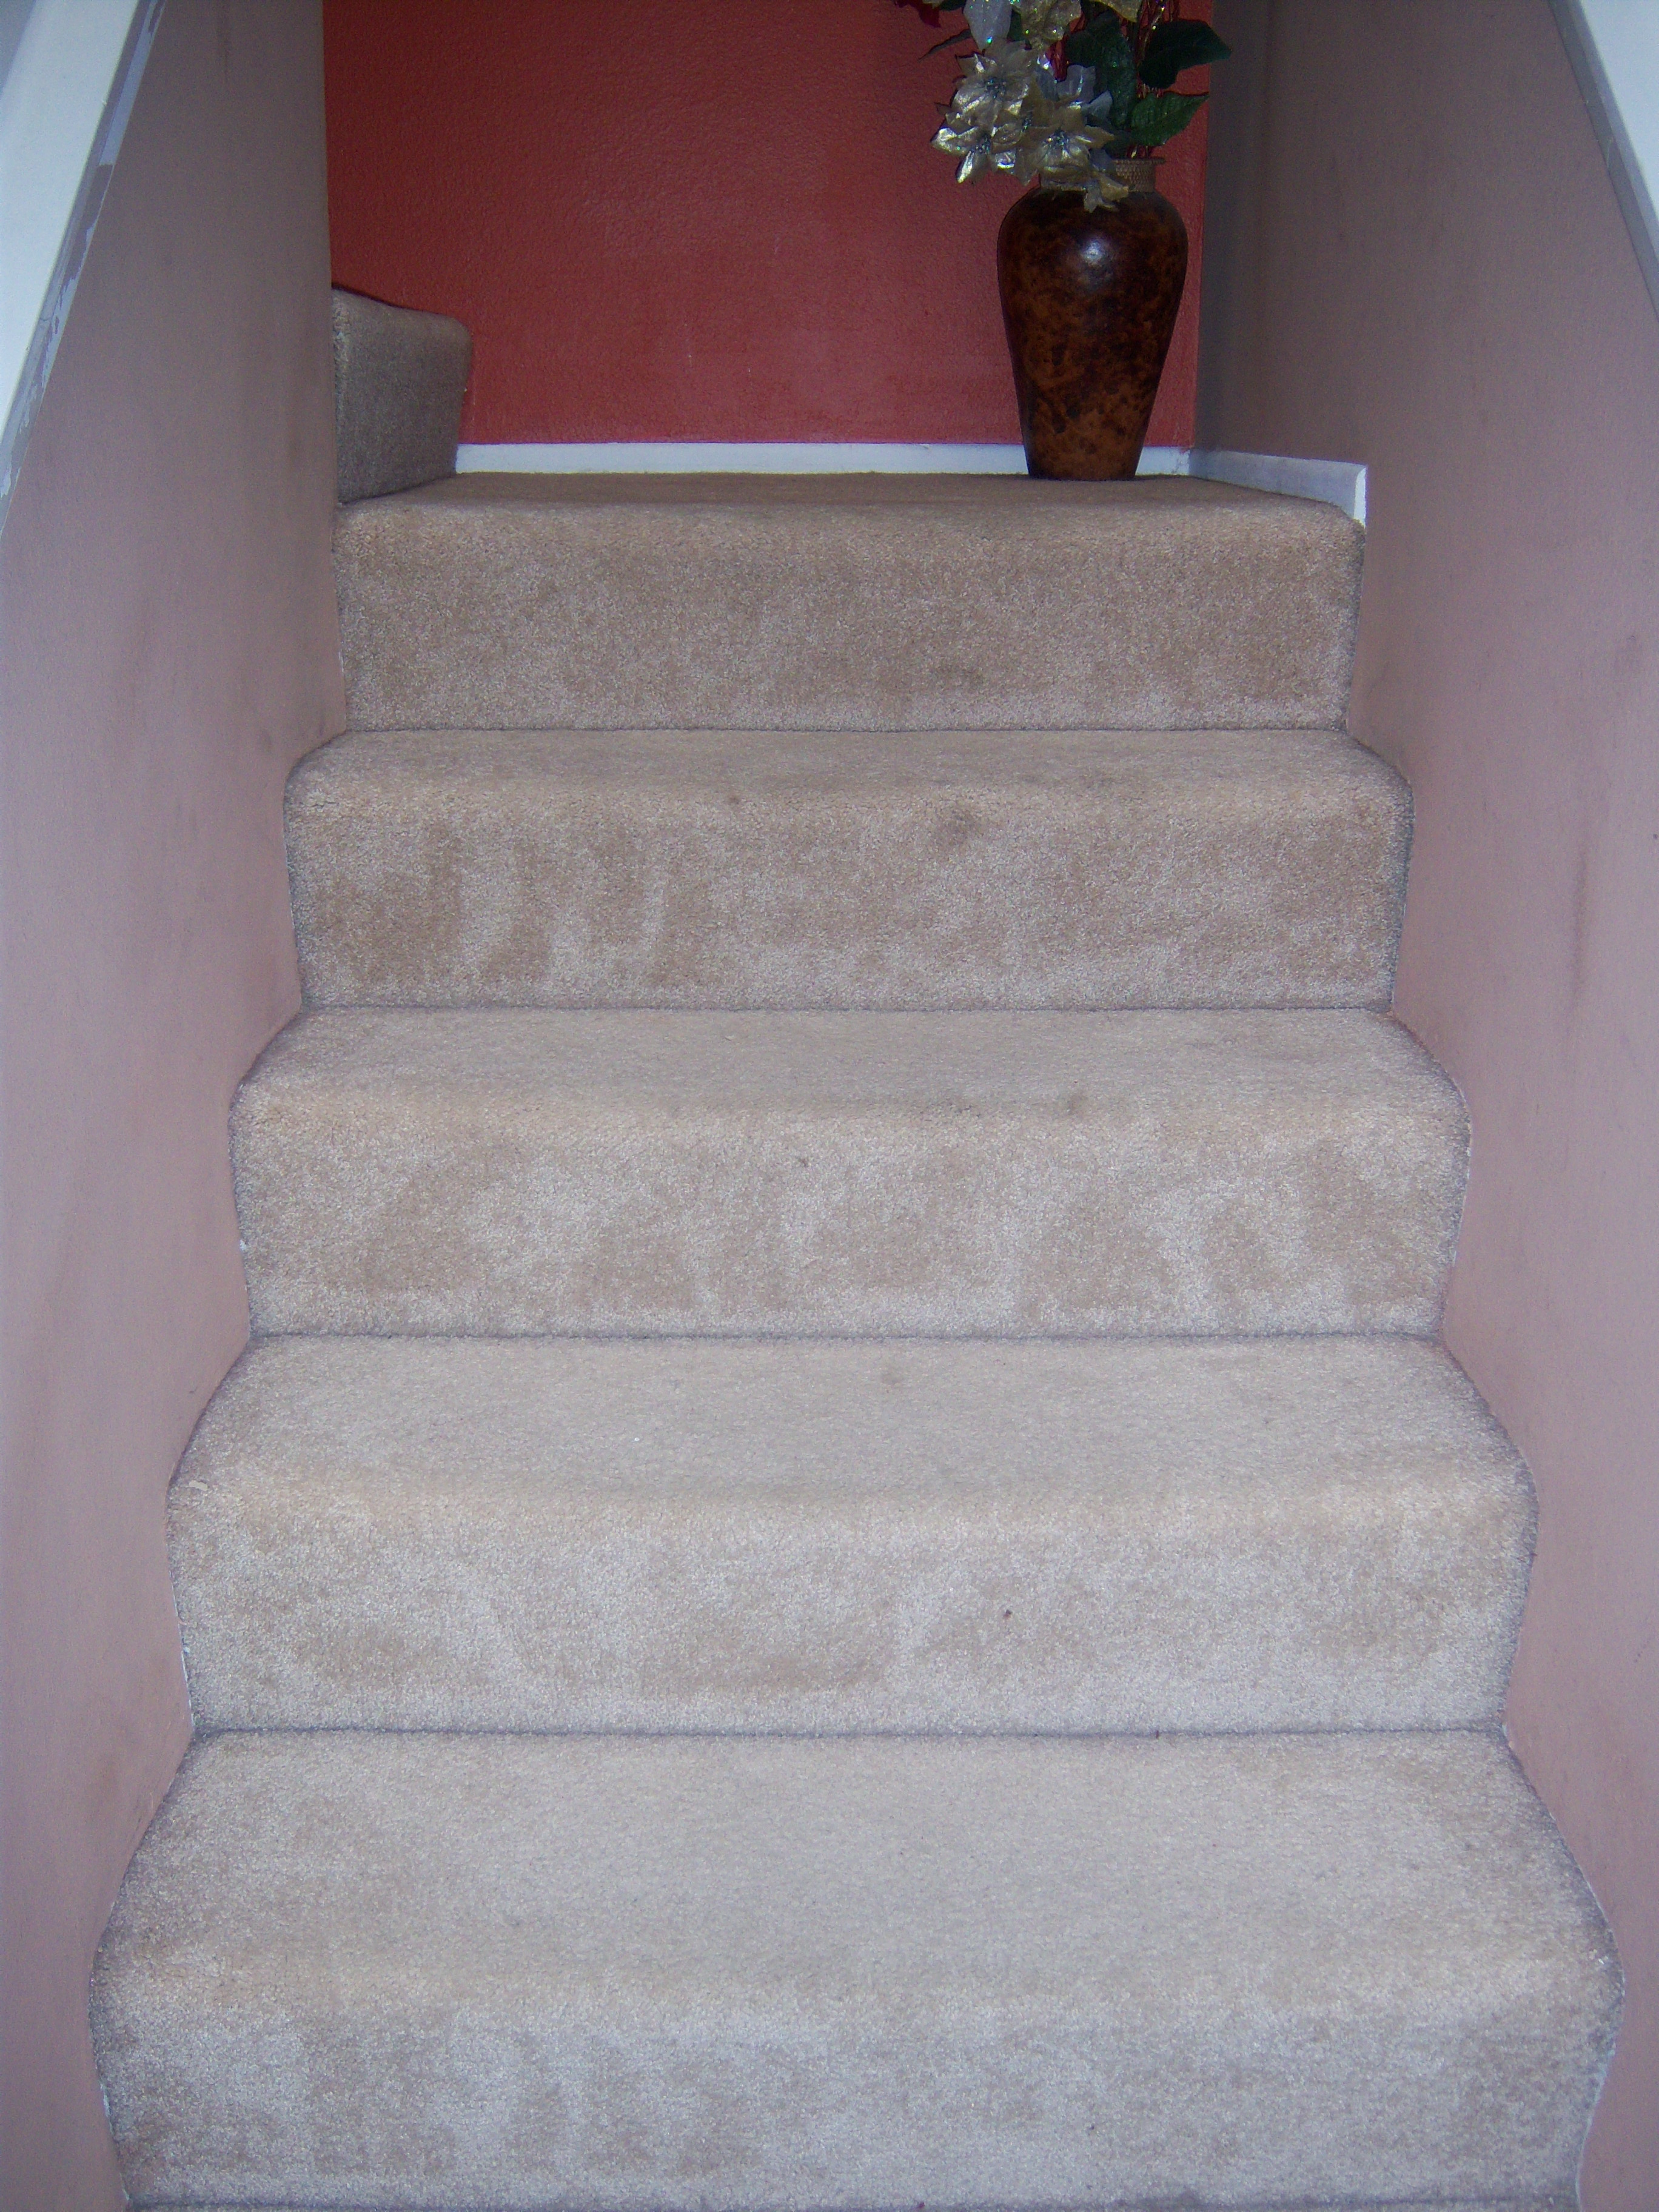 Freshly vacuumed stairs!